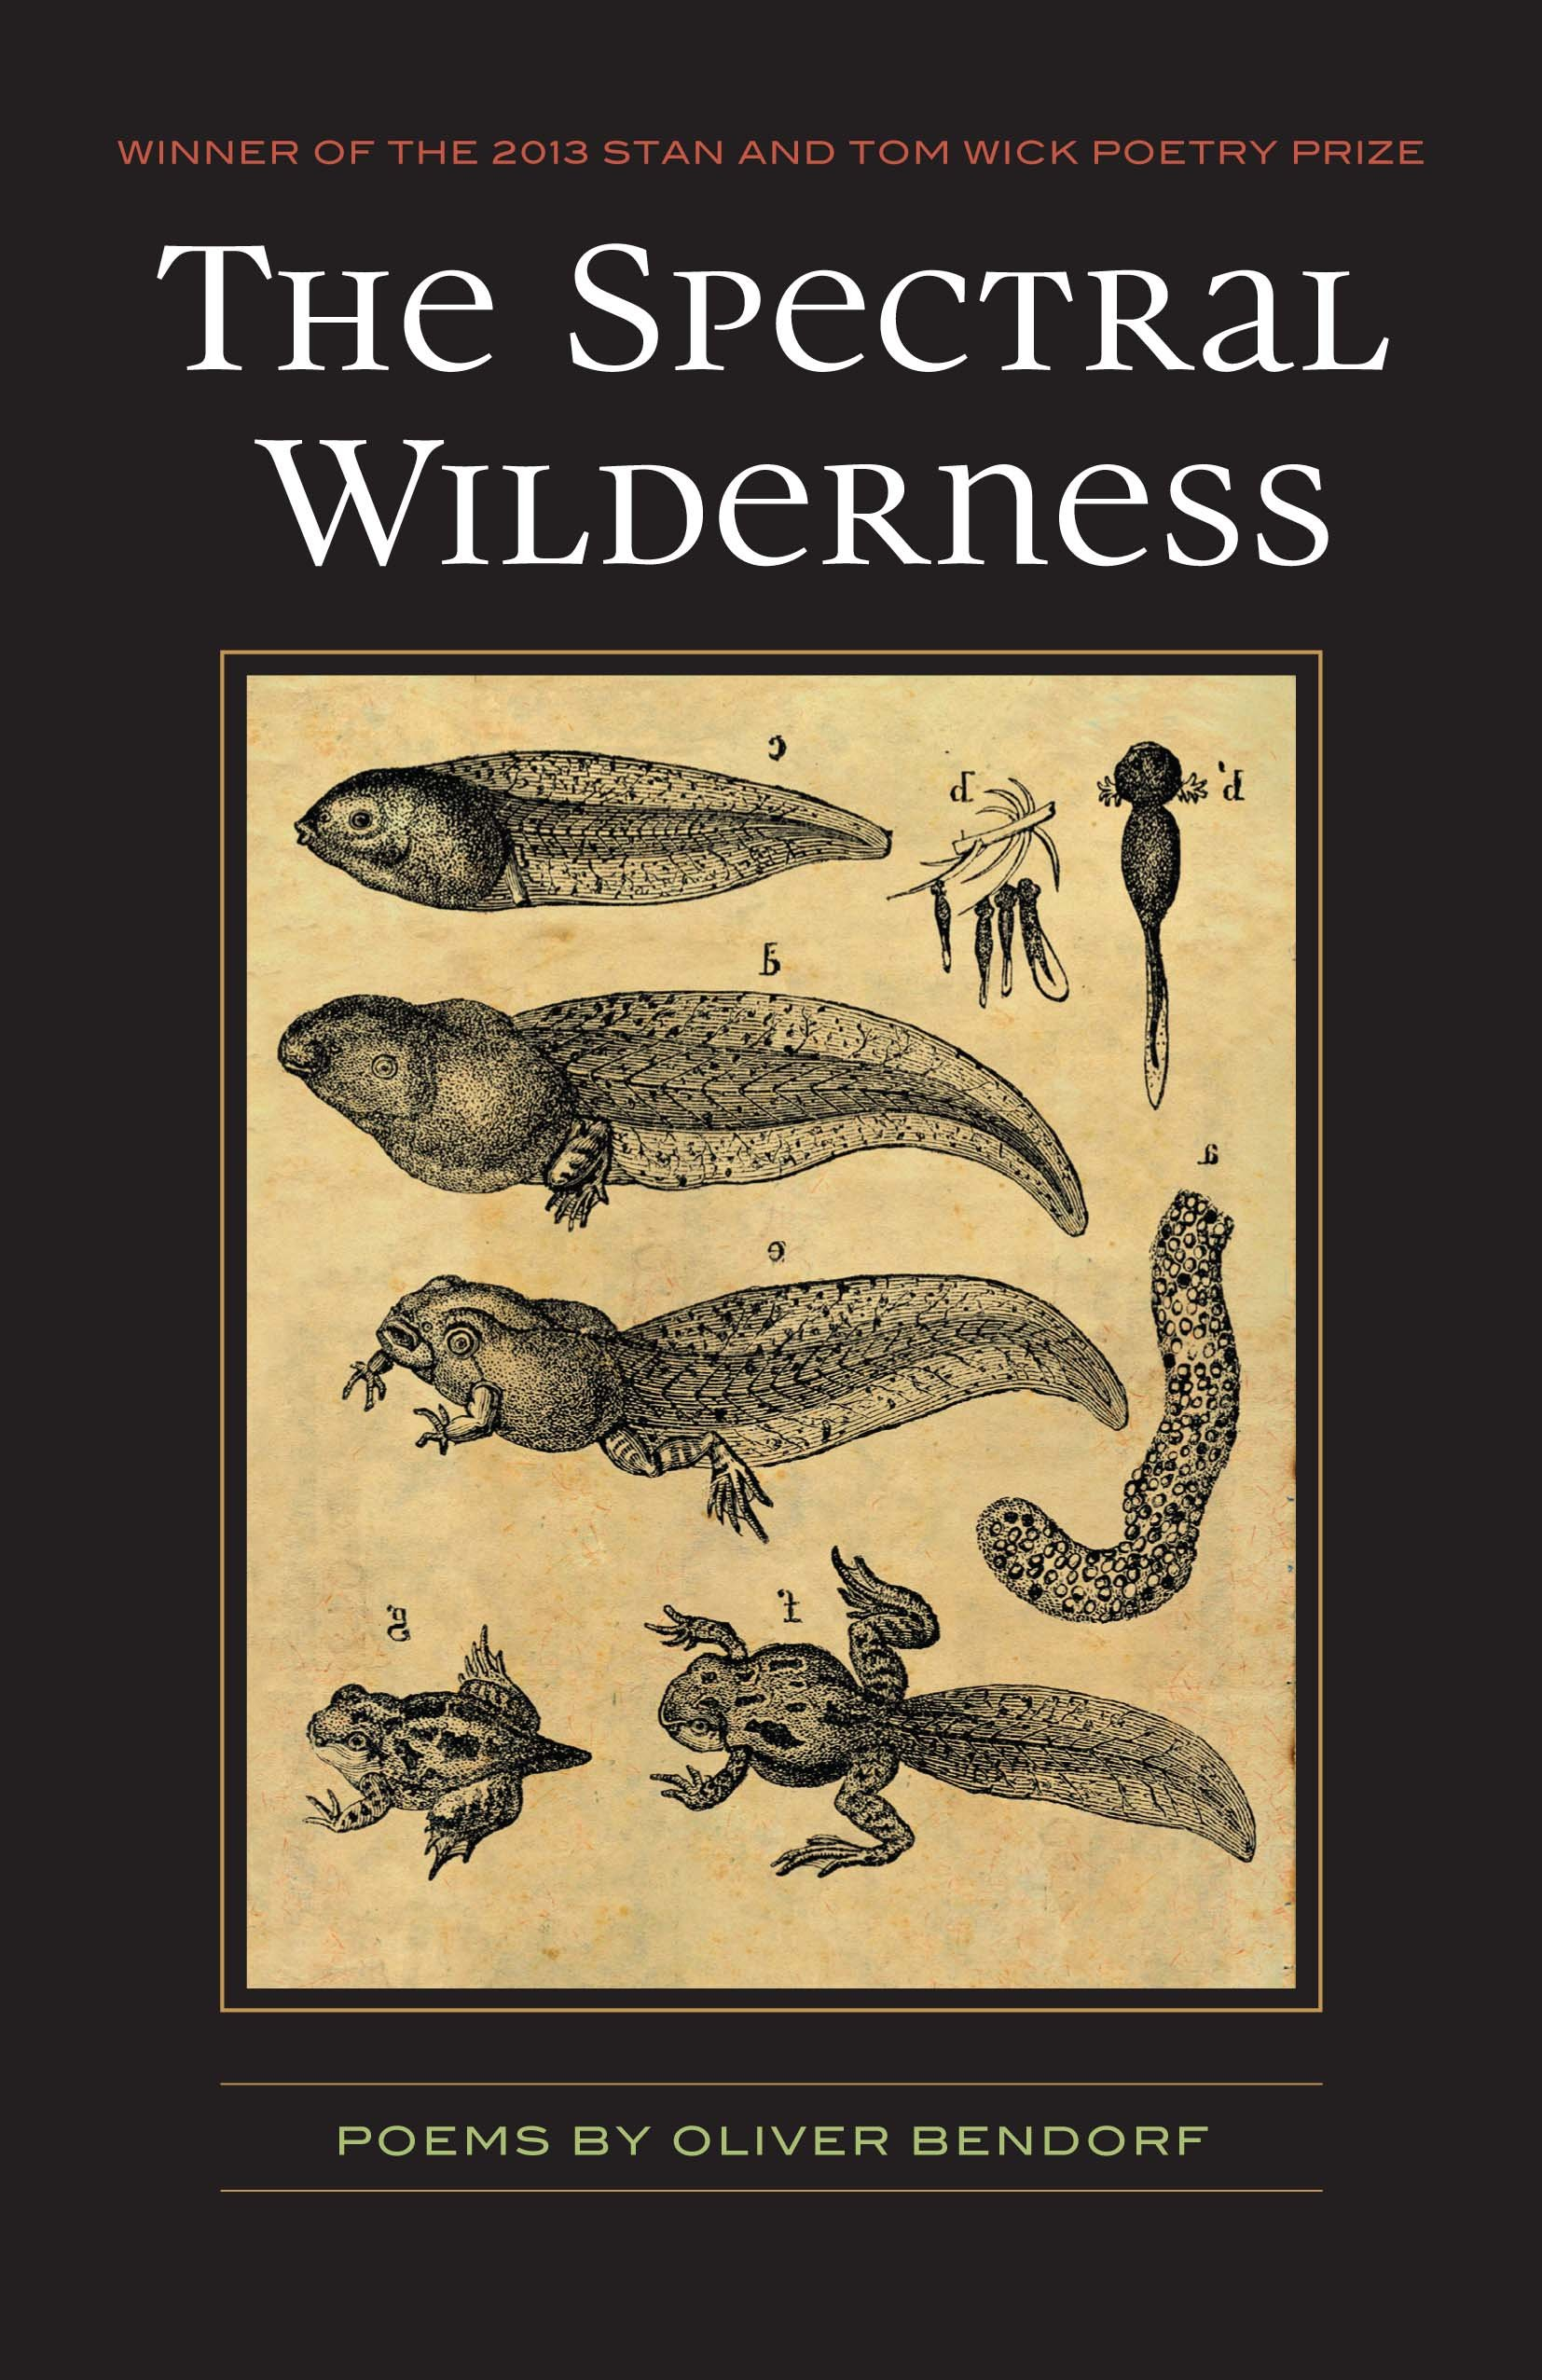 the-spectral-wilderness-cover.jpg